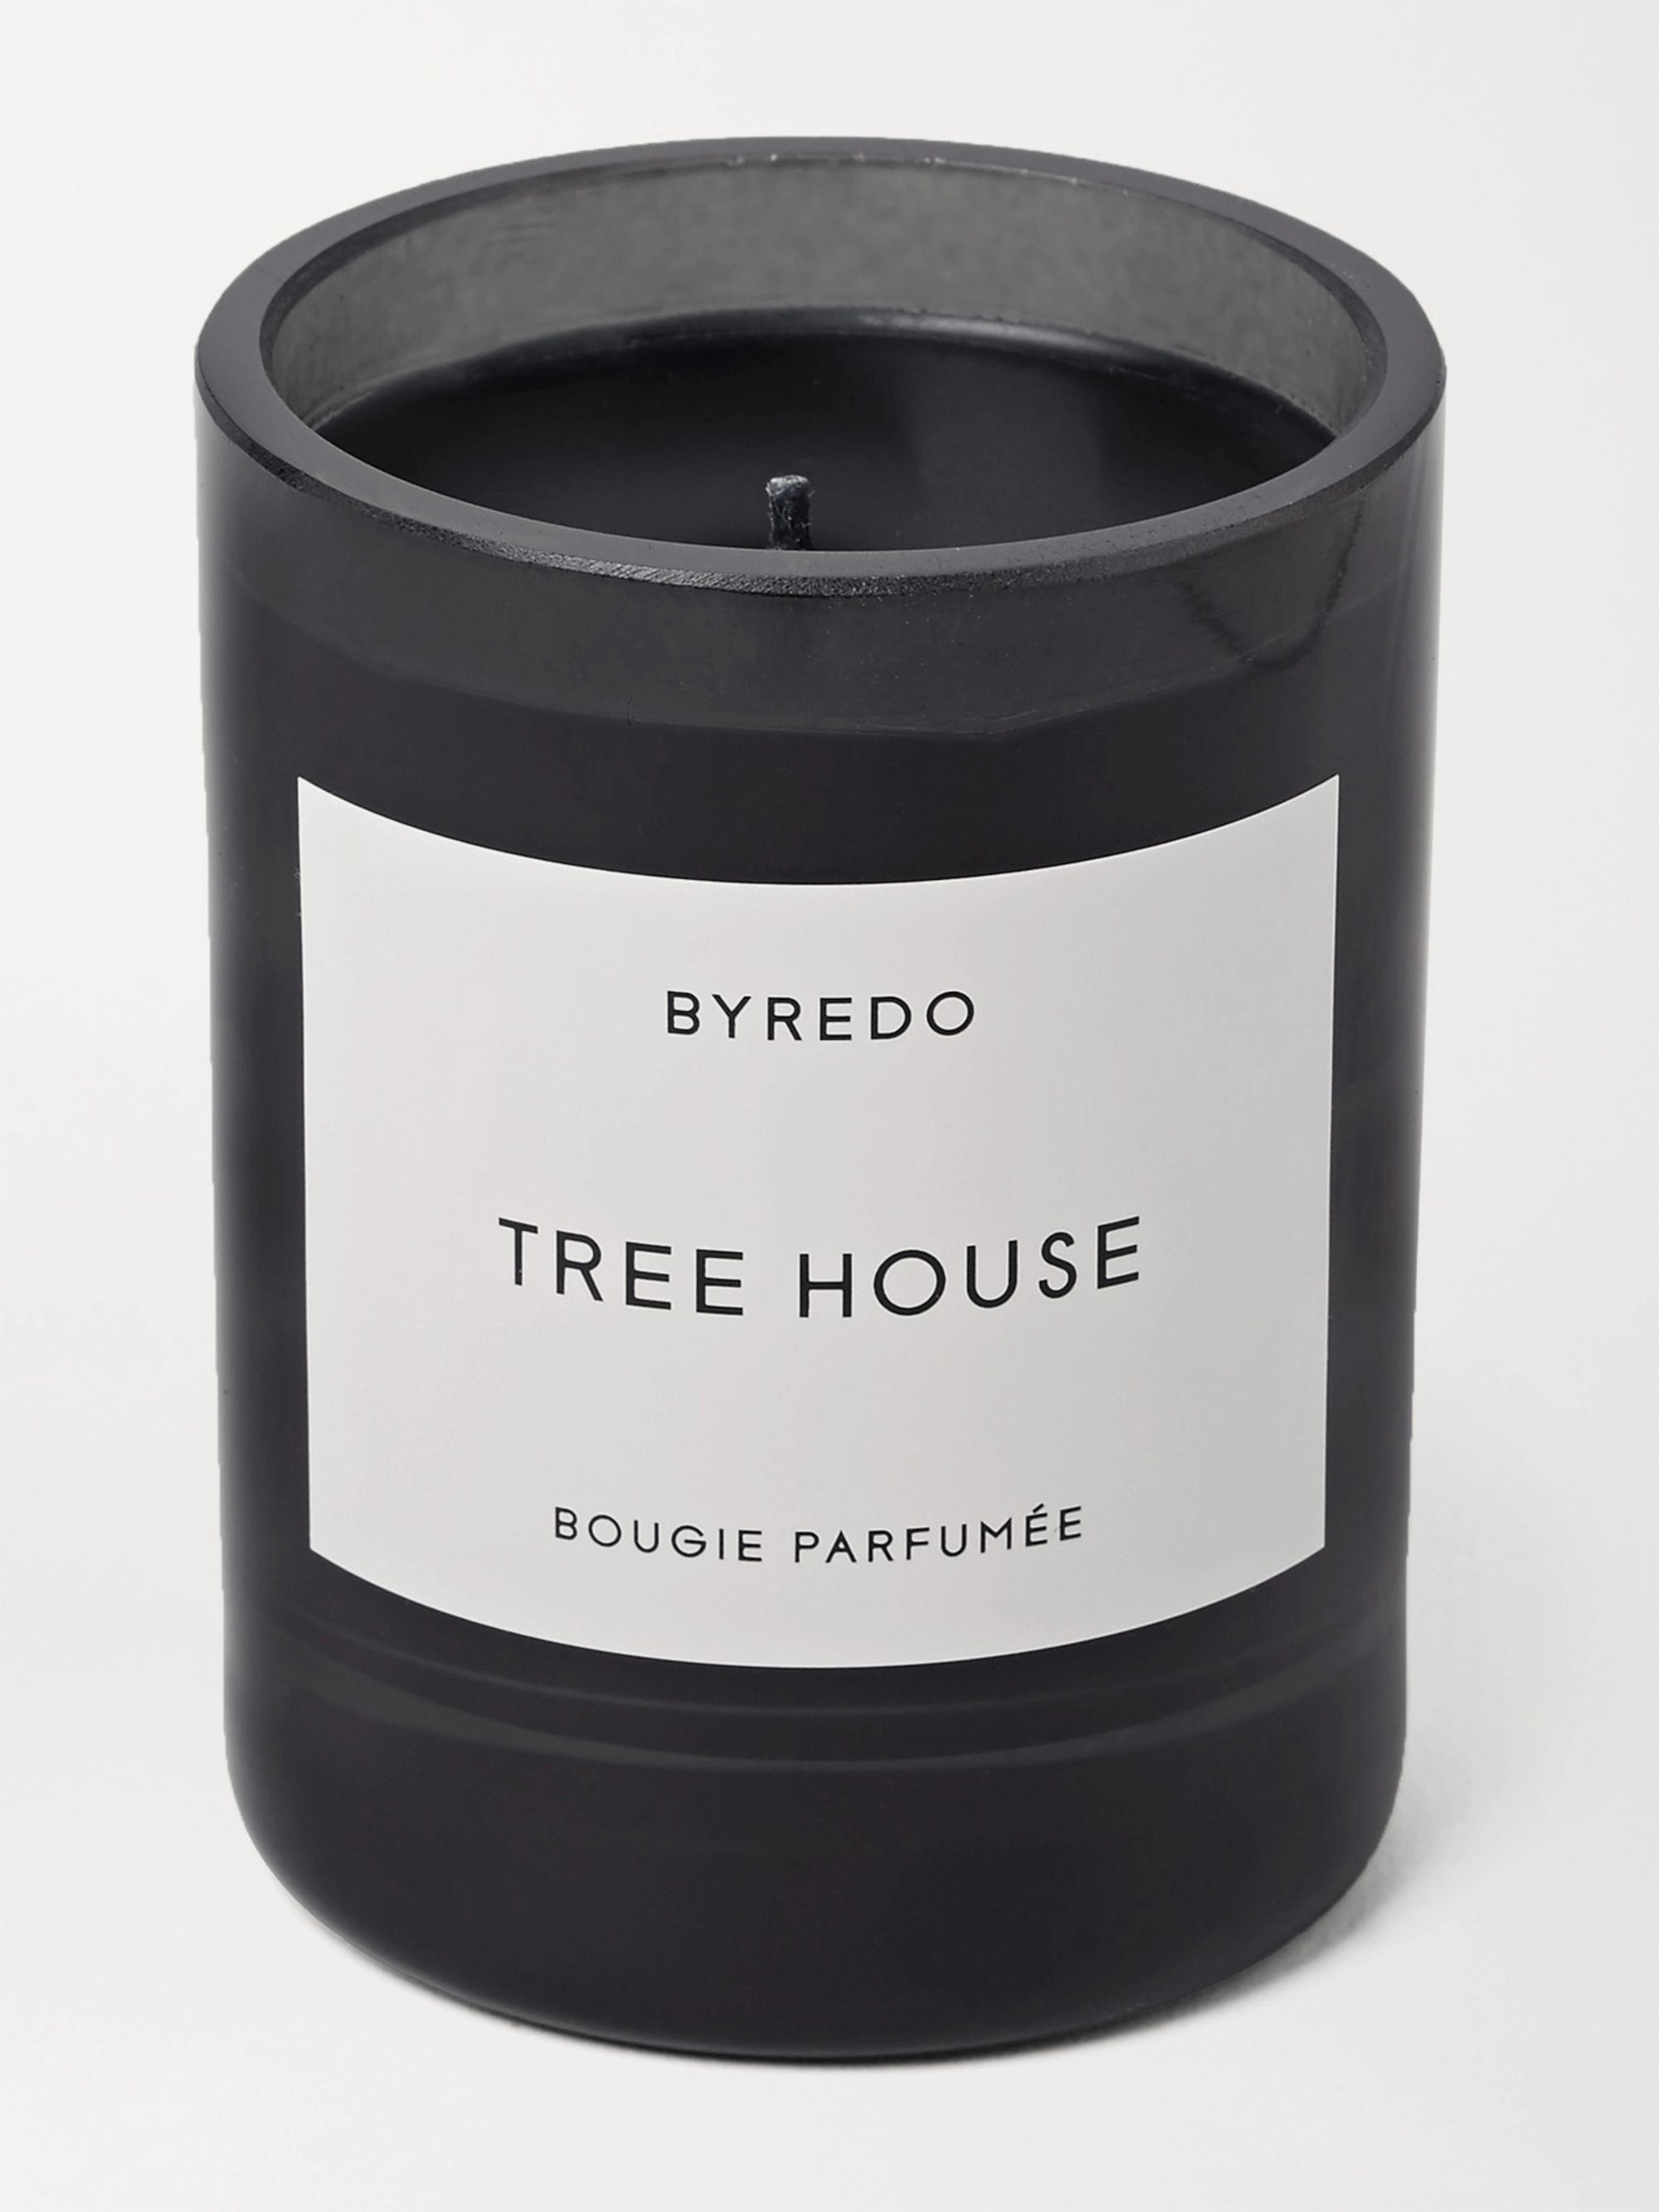 바이레도 캔들 Byredo Tree House Scented Candle 240g,Black